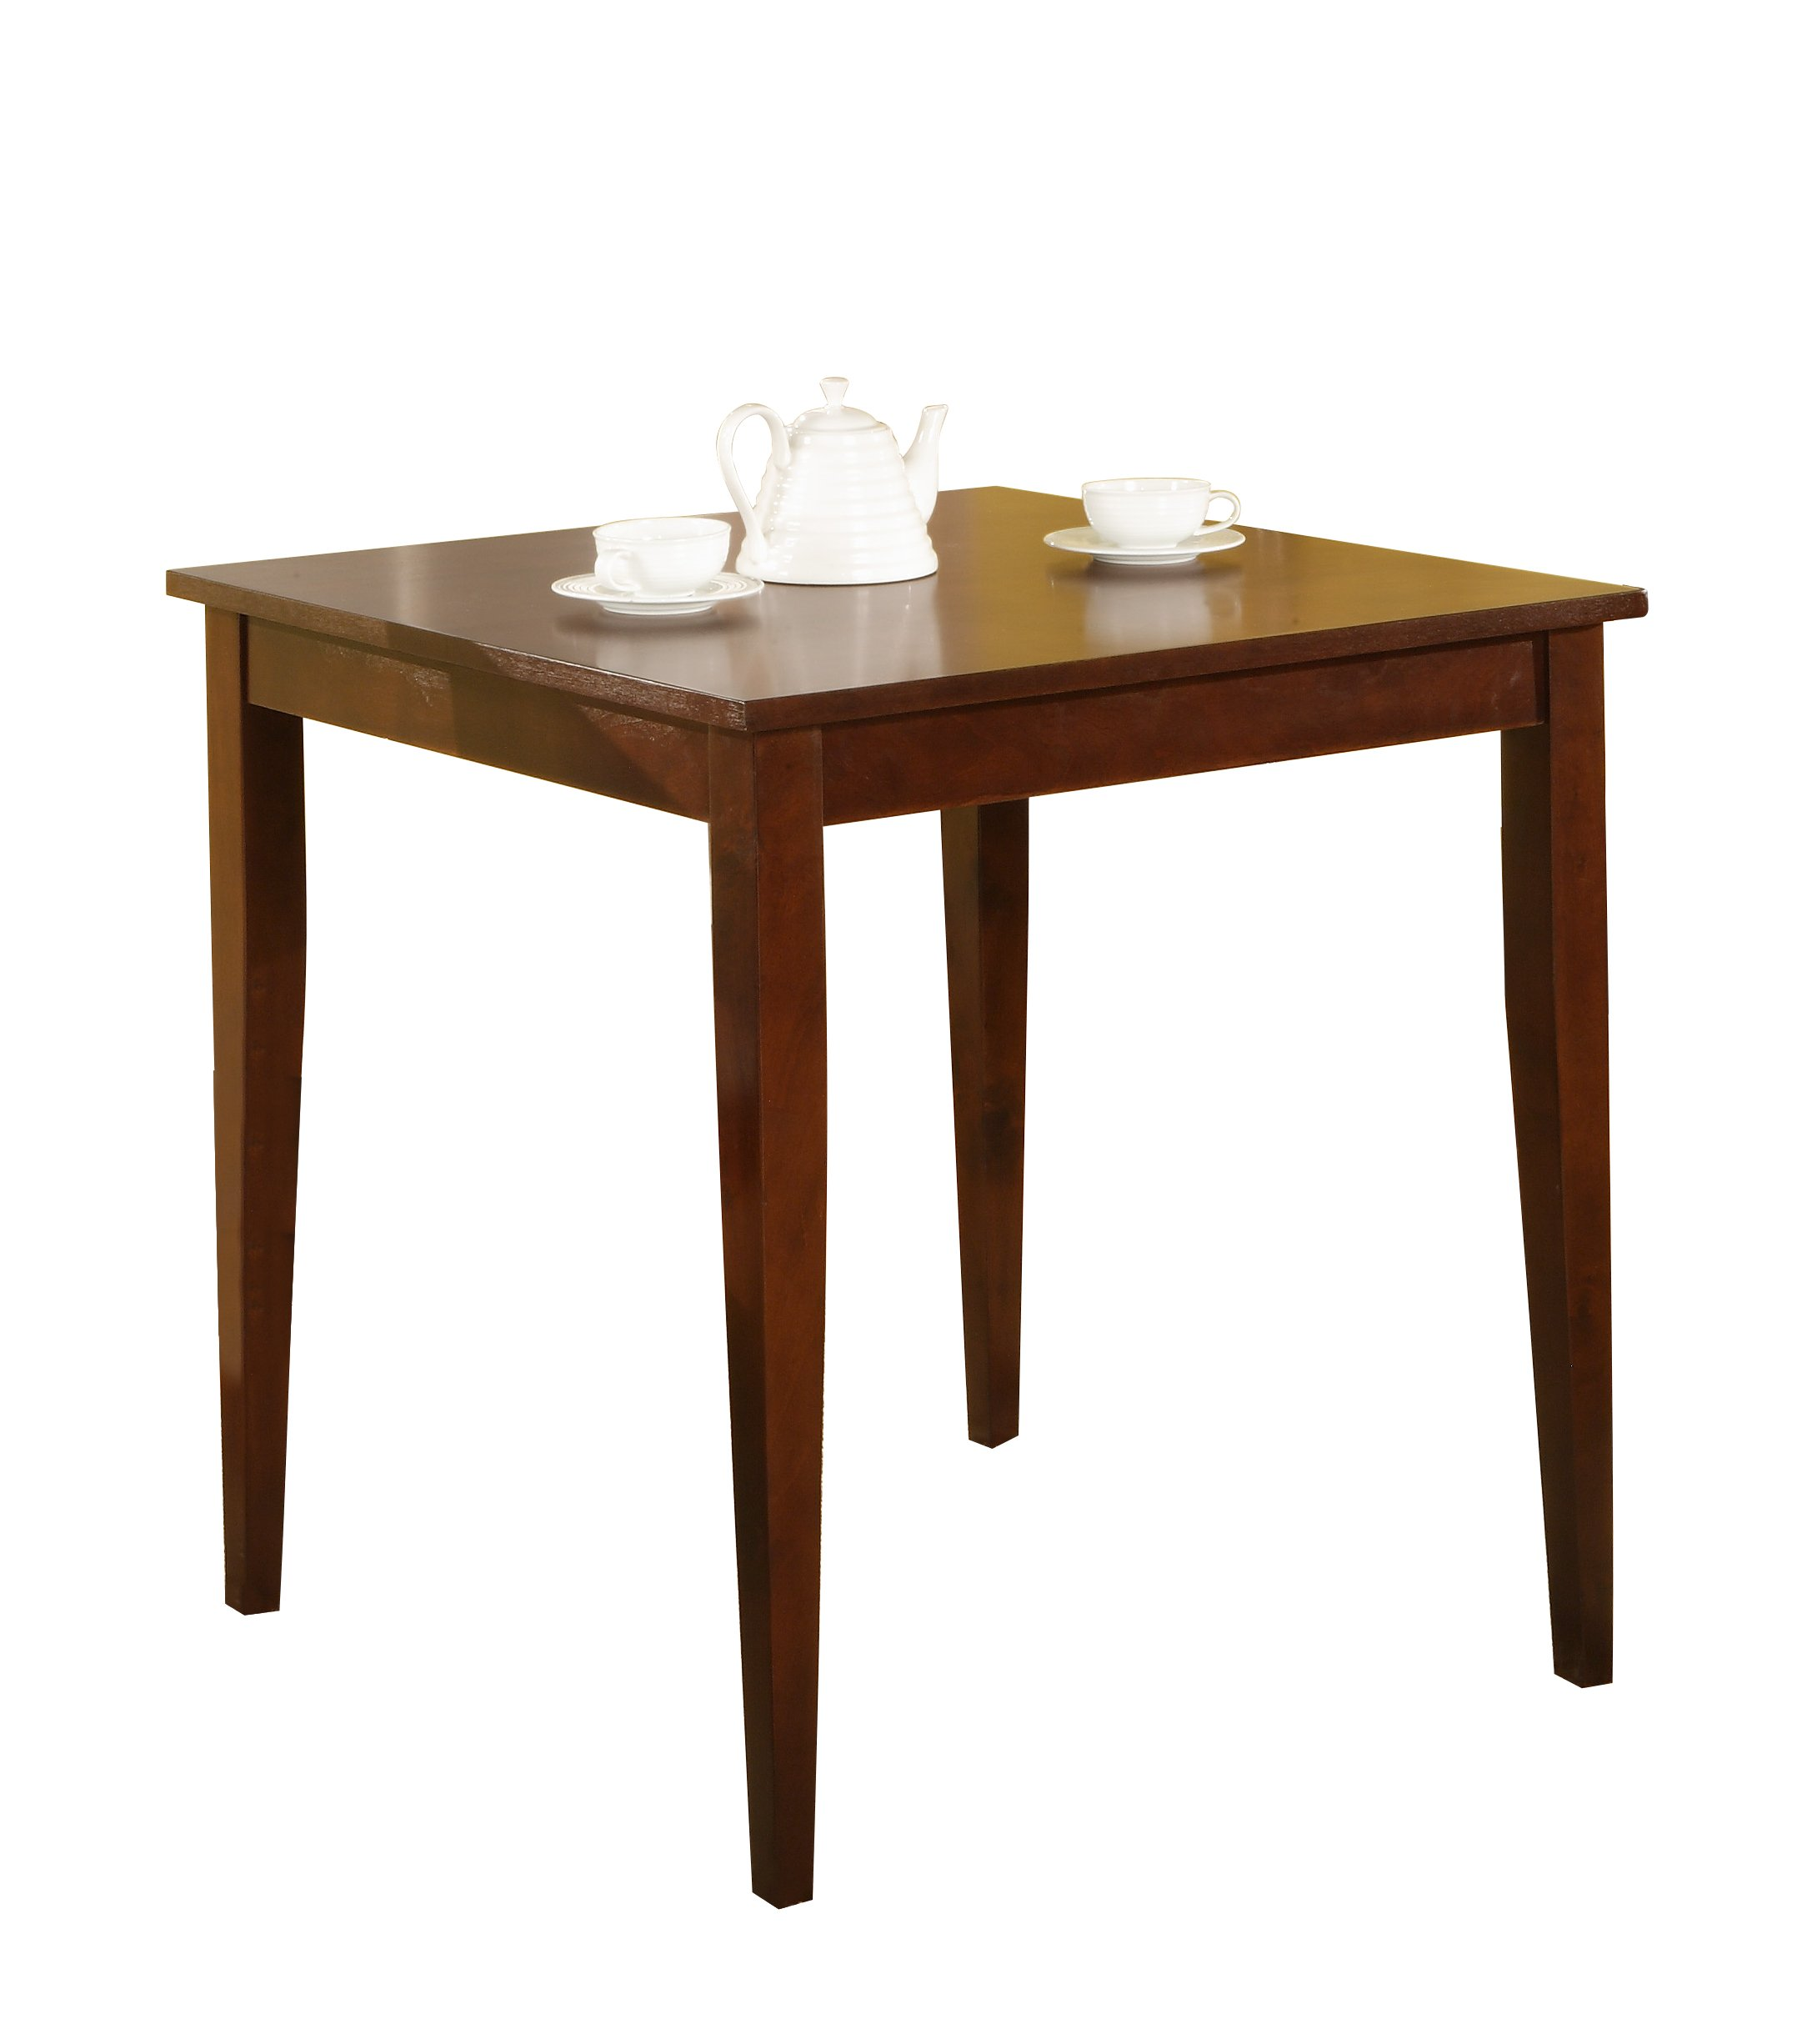 Pilaster Designs - 30'' Square Cherry Finish Solid Wood Dining Room Kitchen Leg Table